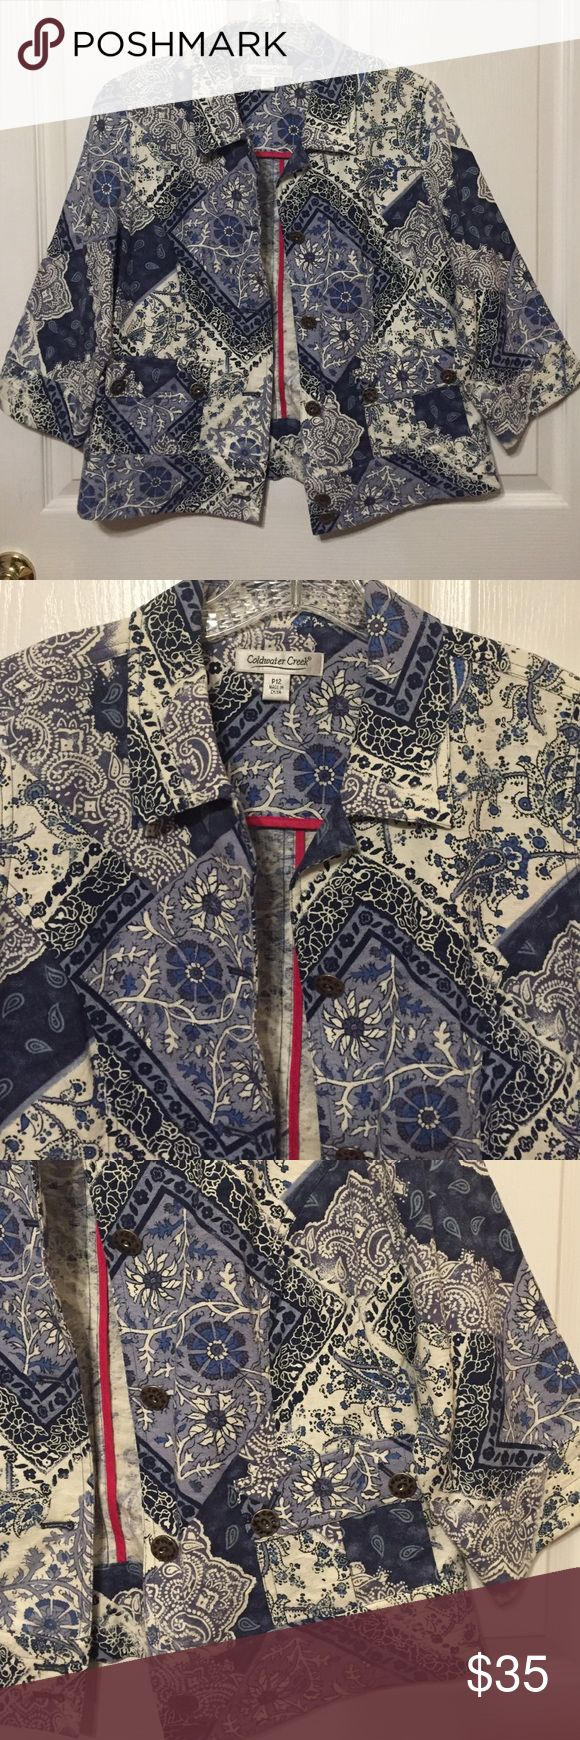 ⚡️Coldwater Creek Sz P12 blue and white jacket Blue and white print Coldwater Creek jacket in size P12.  It is 100% cotton.  Jean jacket style.  Two front pockets, buttons up.  No holes or stains and from a smoke free home Coldwater Creek Jackets & Coats Jean Jackets